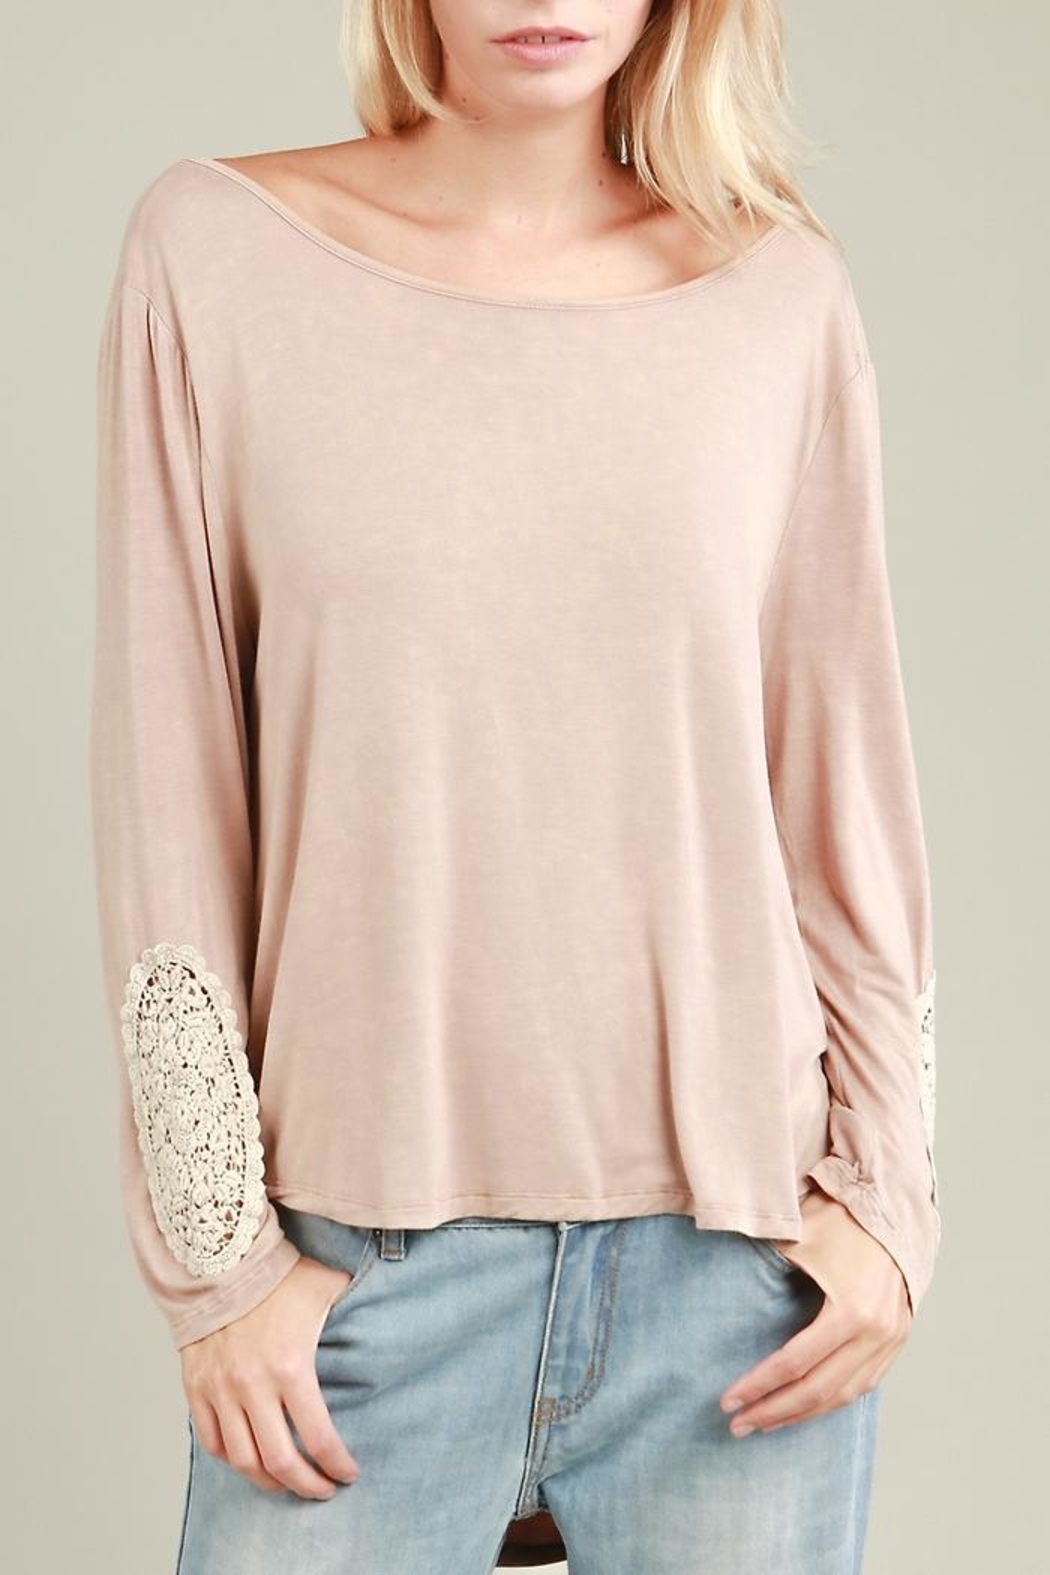 People Outfitter Alice Vintage Top - Front Full Image